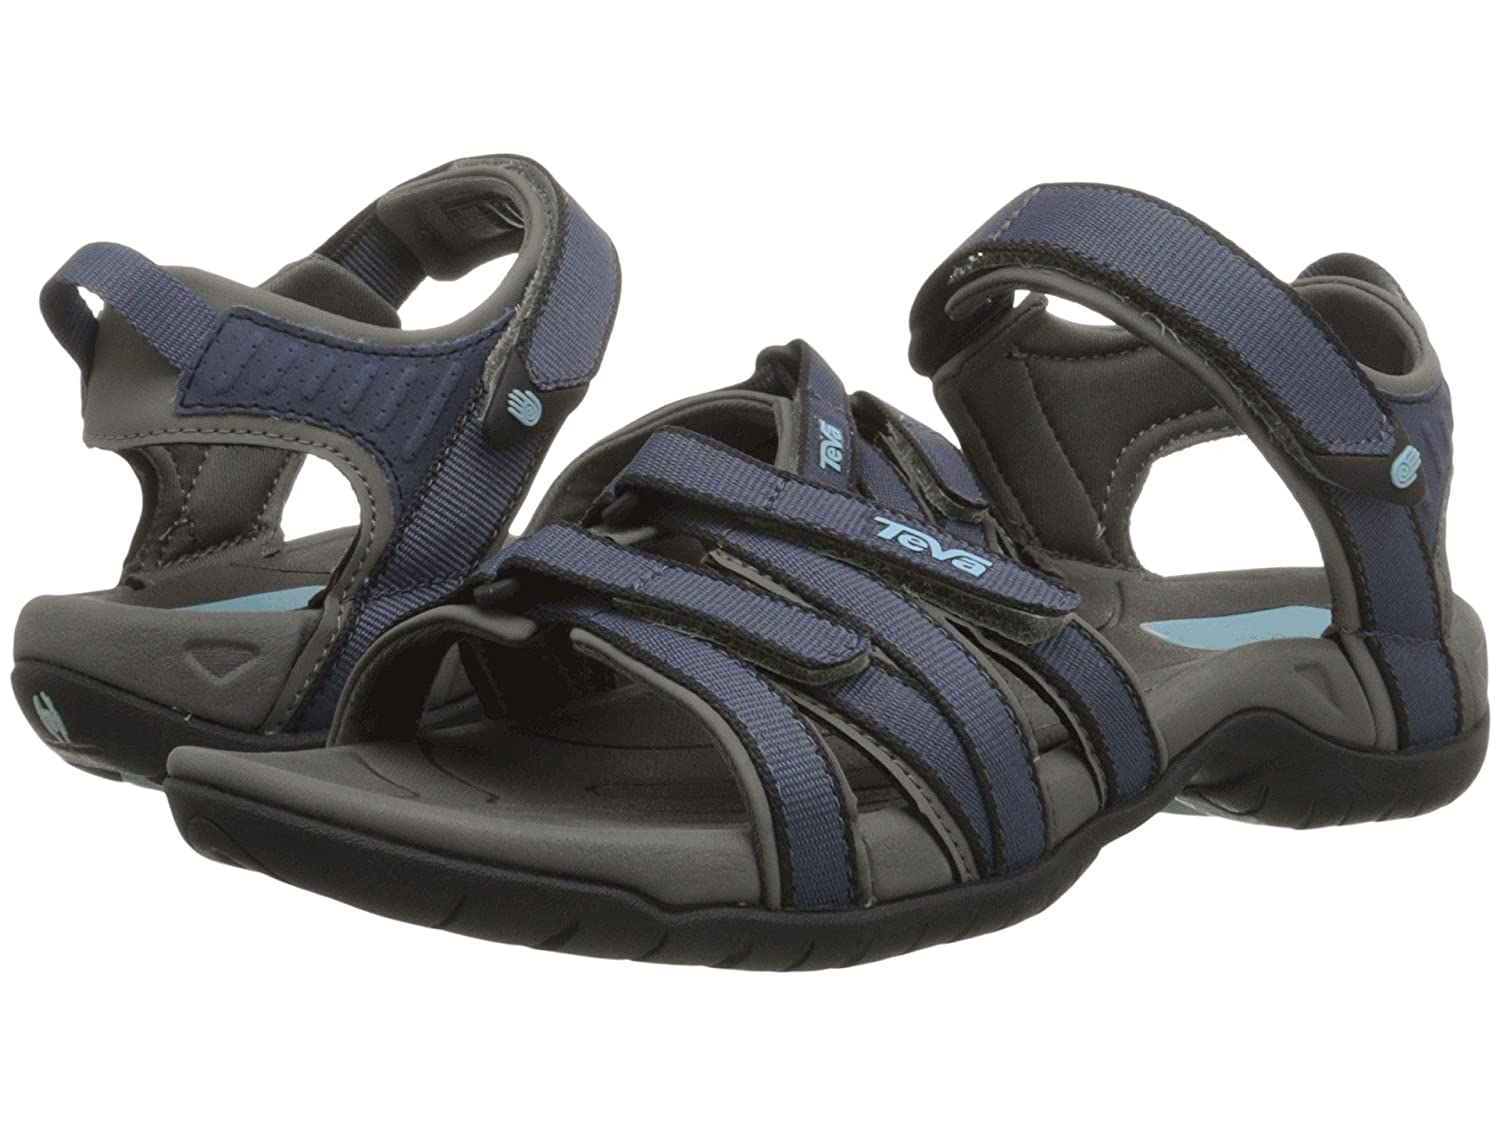 Teva Women's Tirra Athletic Sandal B071YV3WFP 11 B(M) US|Bering-sea